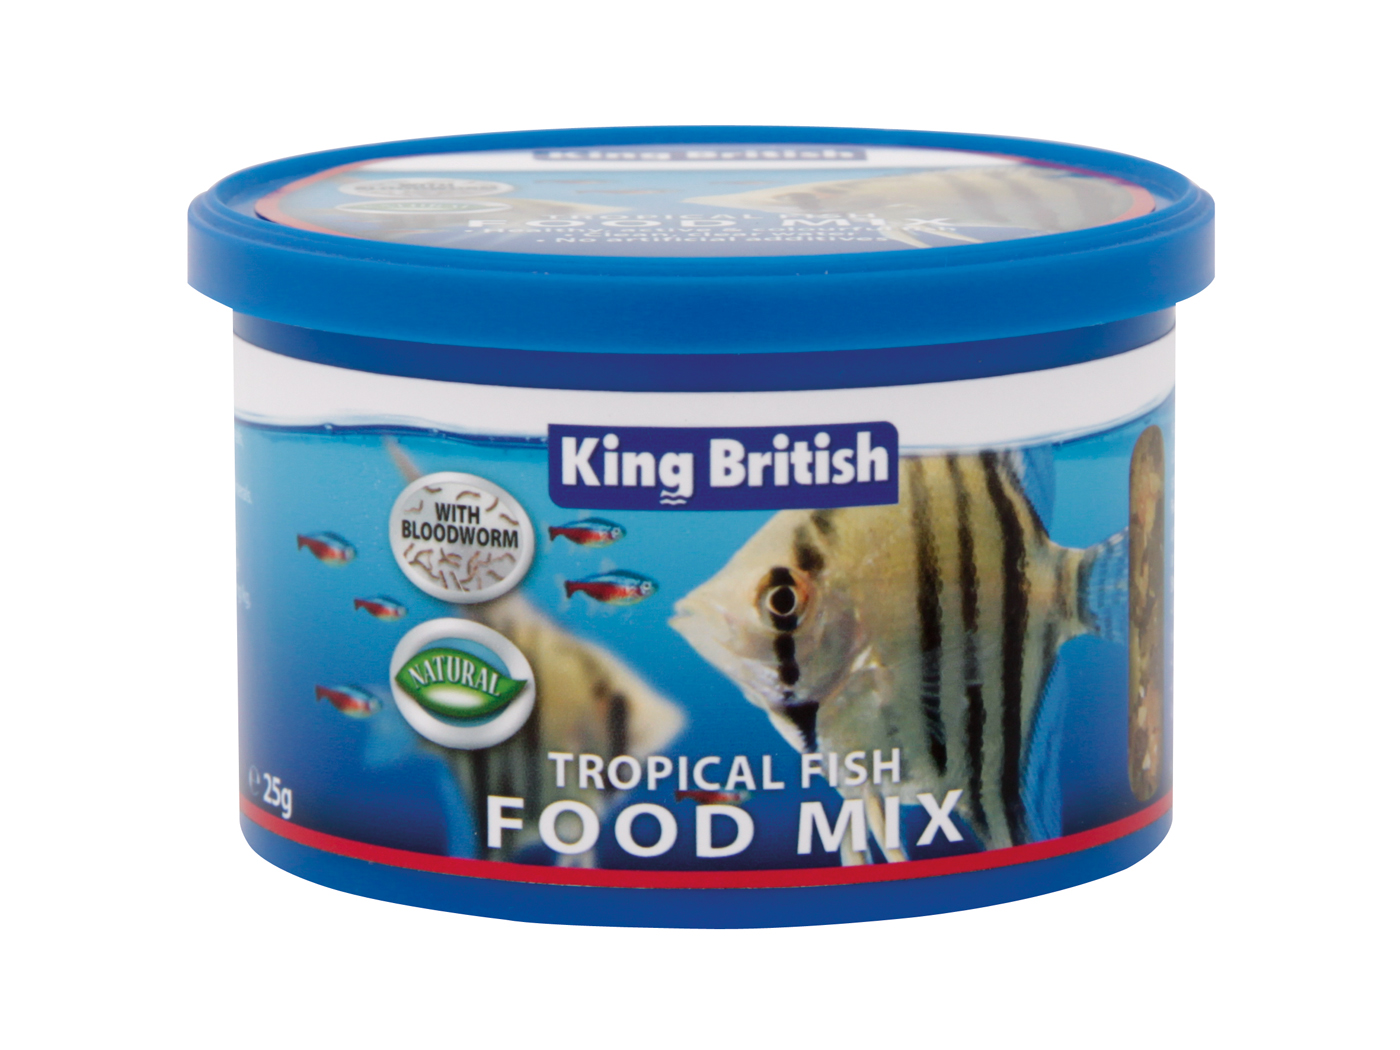 King British Tropical Fish Food Mix